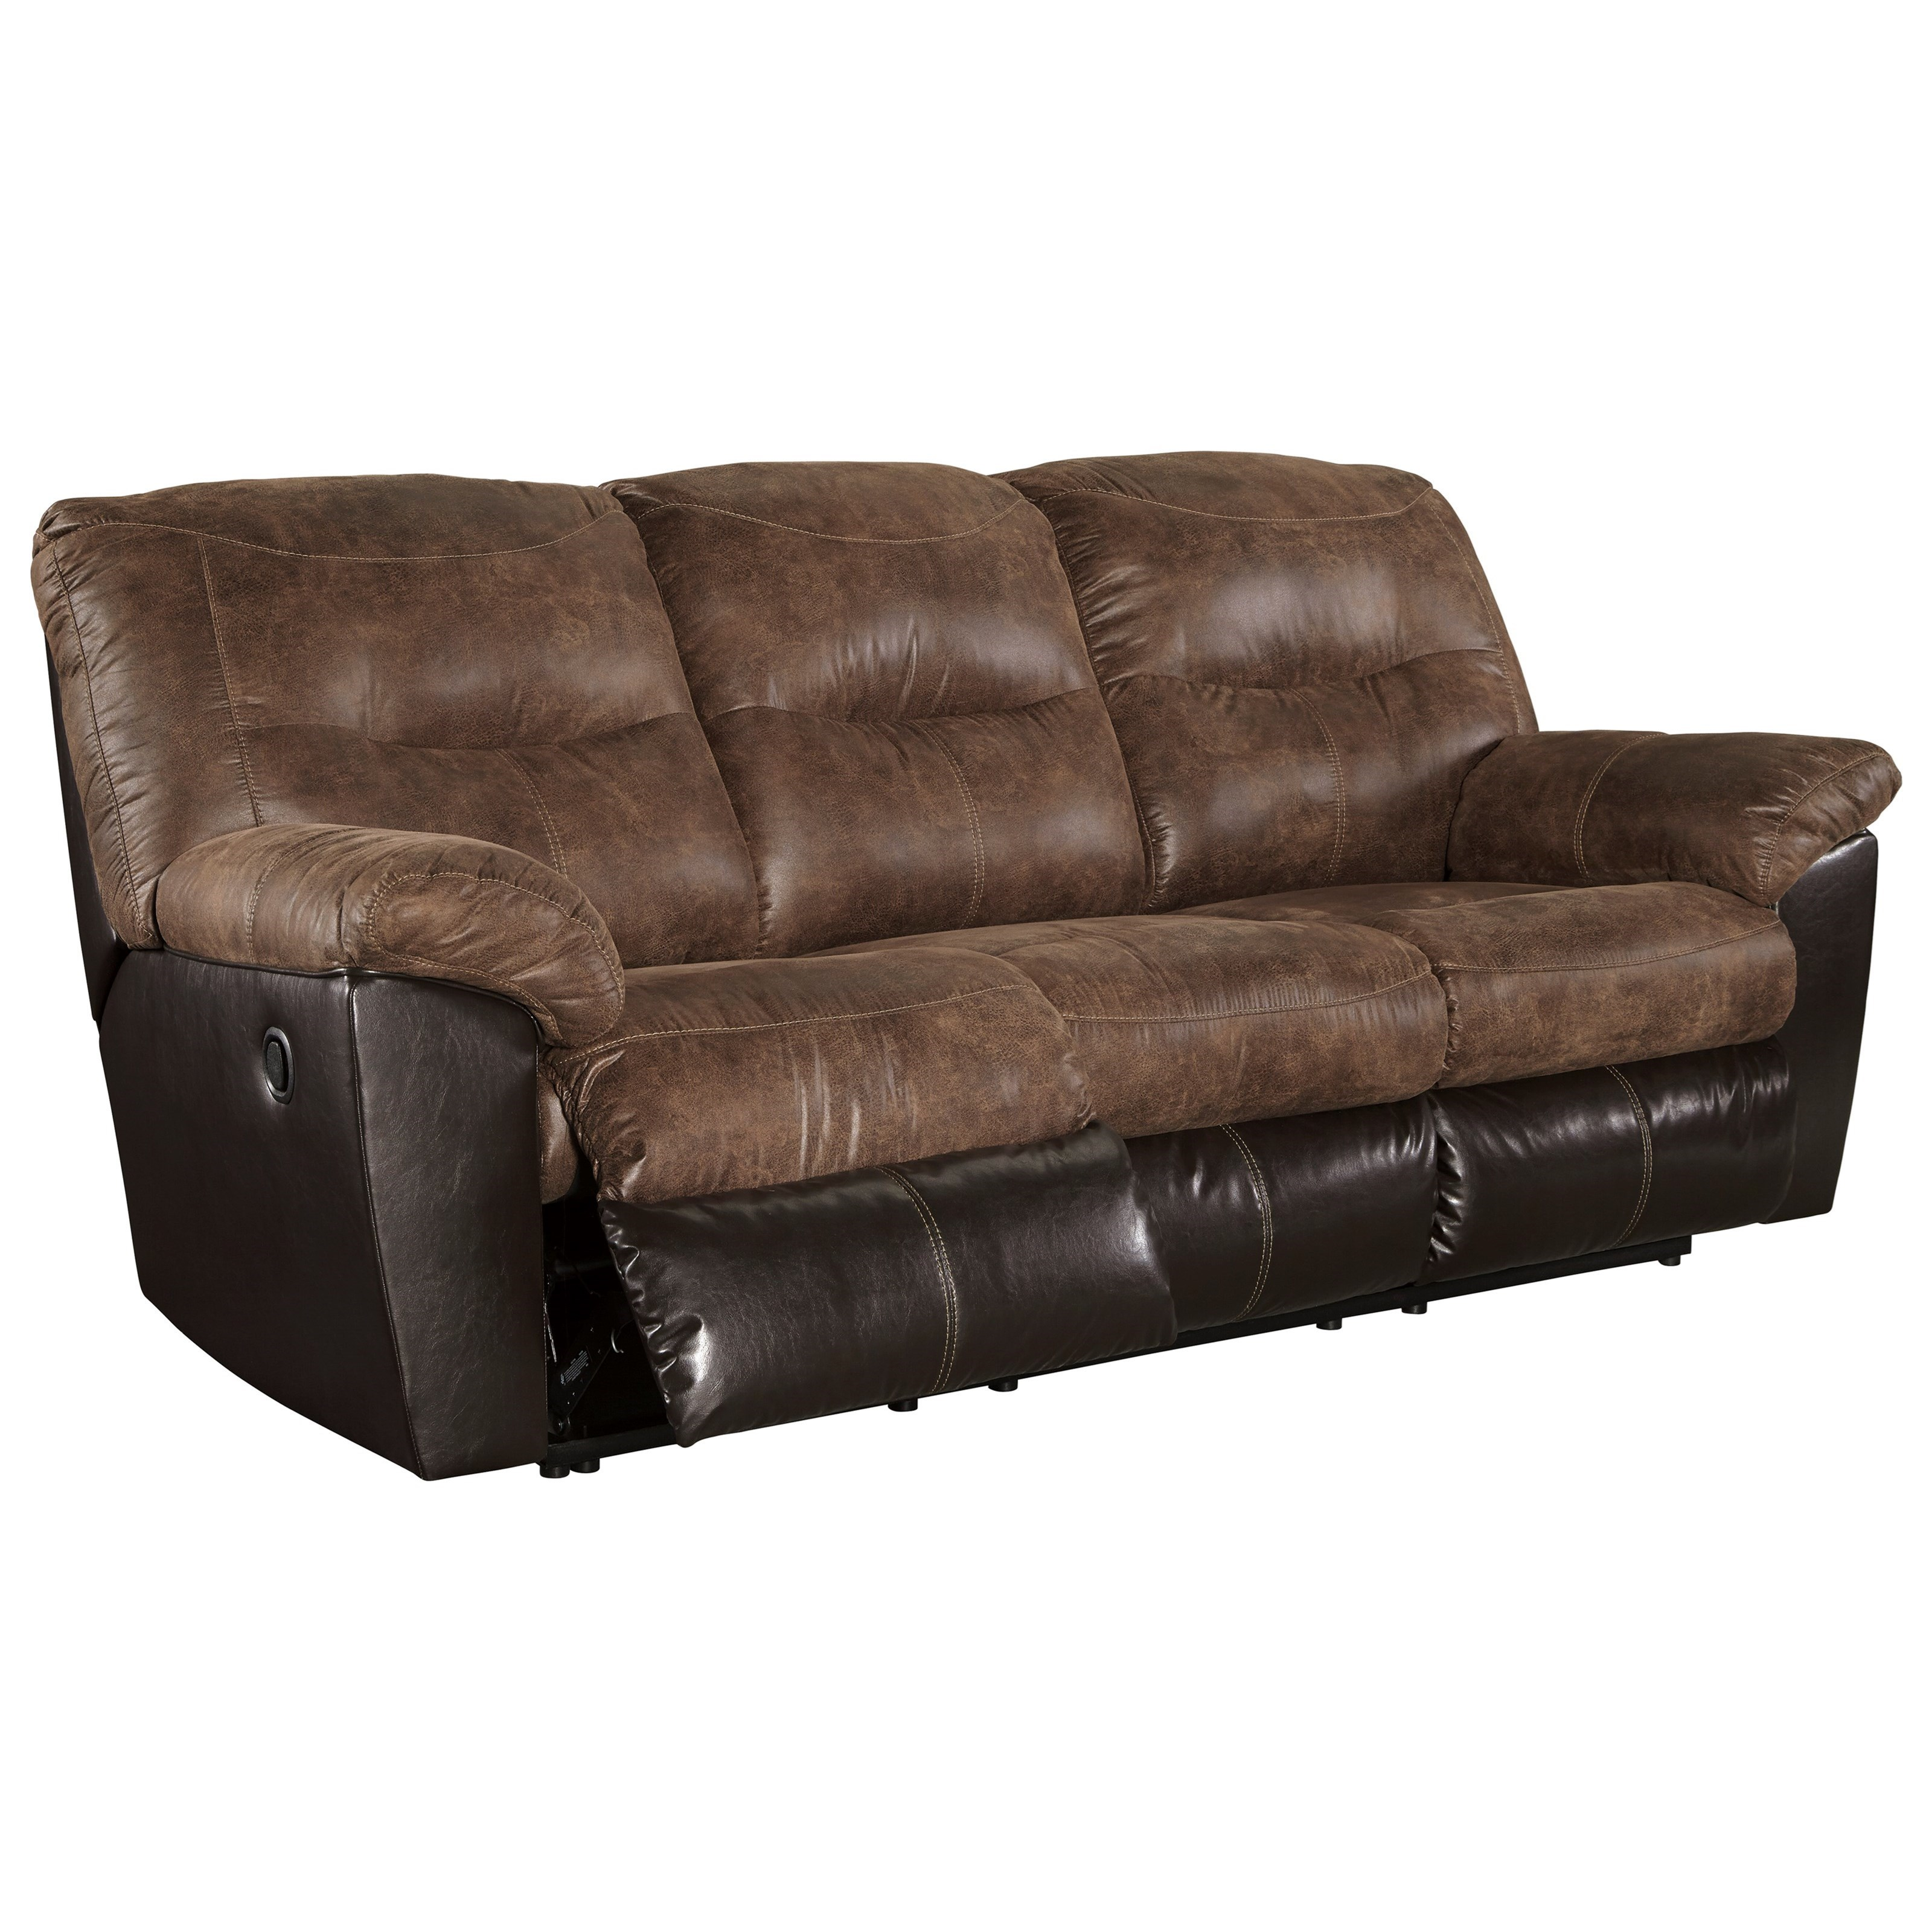 4087 leather sectional sofa with recliners sofas dark blue signature design by ashley follett 6520288 two tone faux